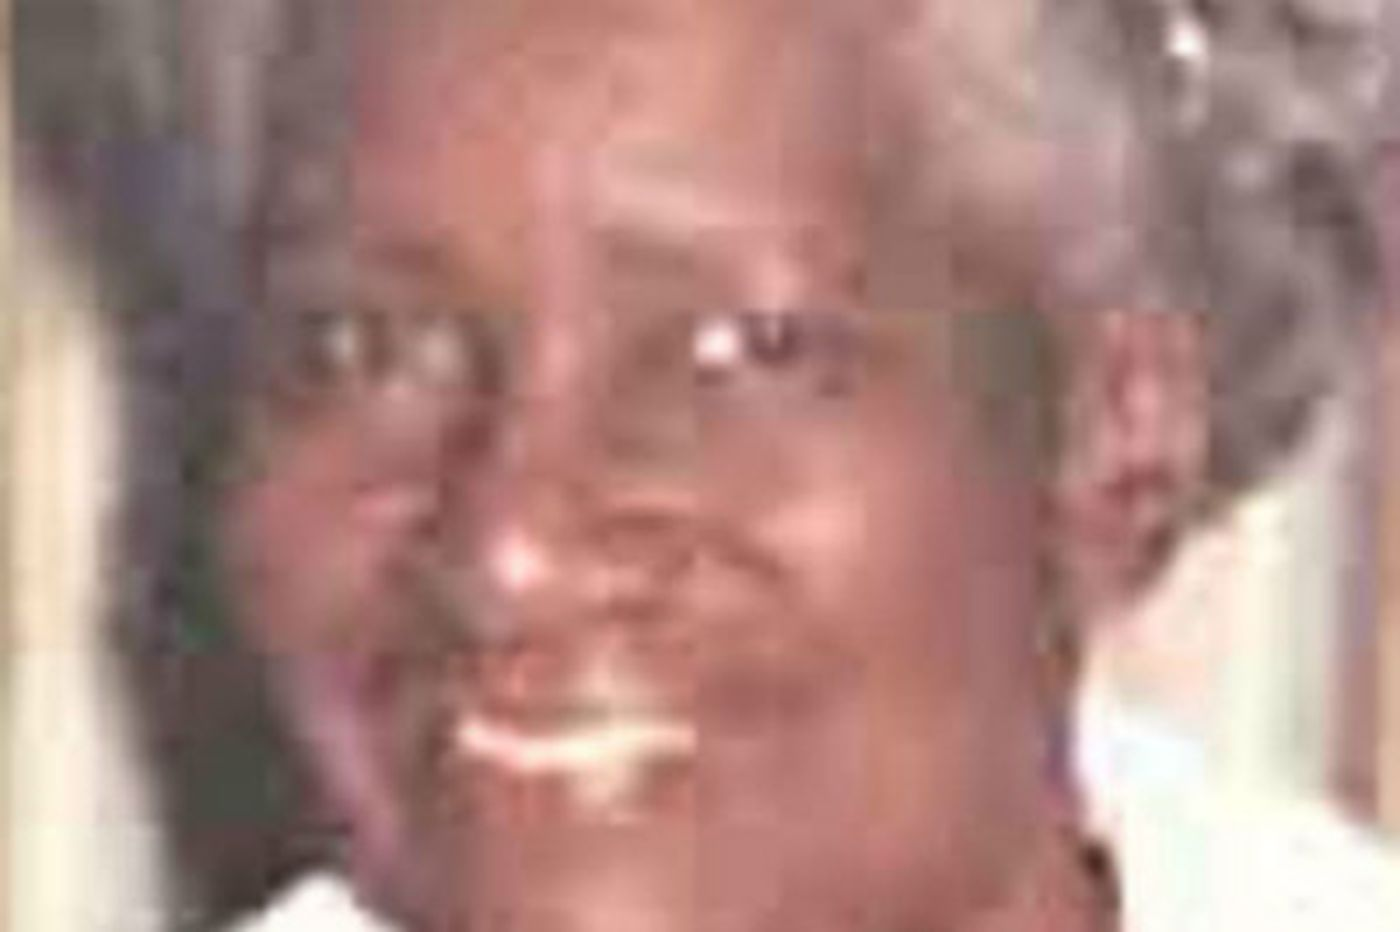 Hattie Mims, 98, civil rights and community activist